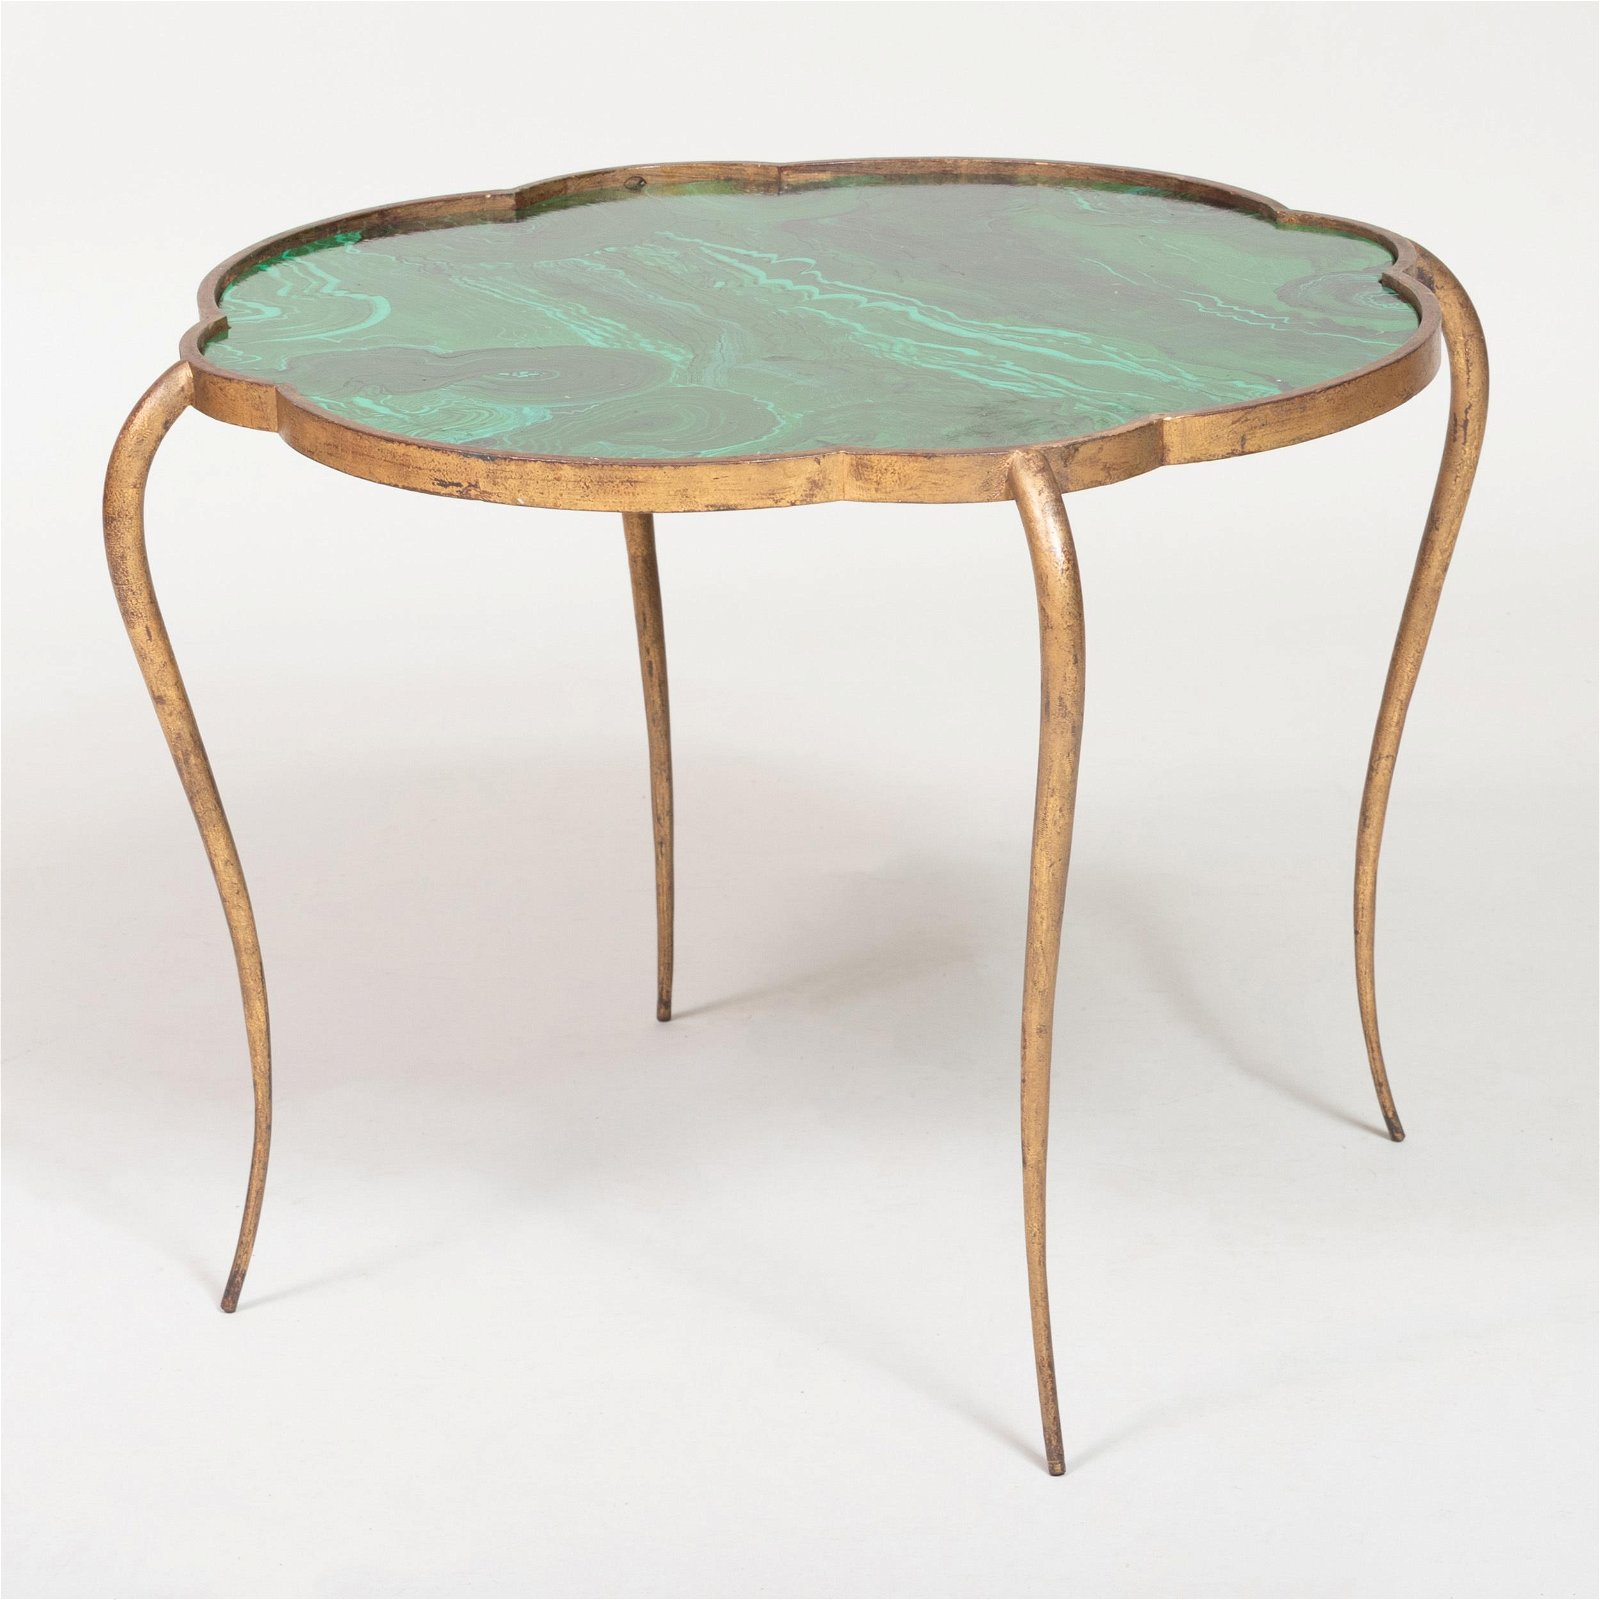 René Prou Gilt-Metal and Faux Malachite Painted Side